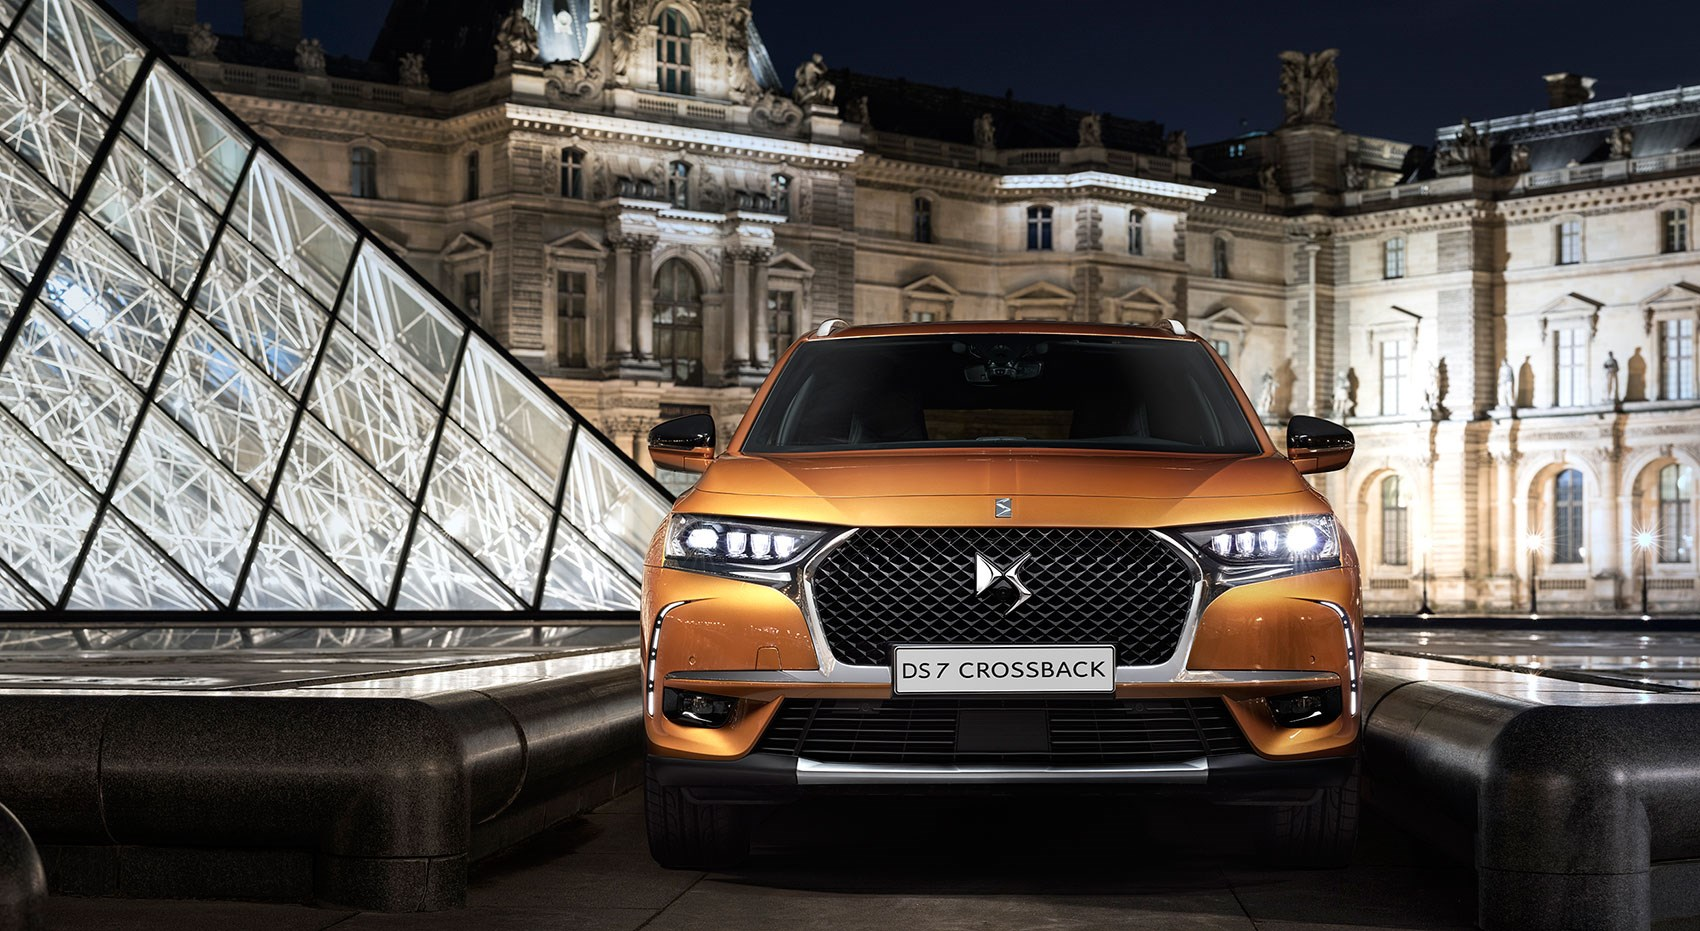 new_ds7_crossback_03